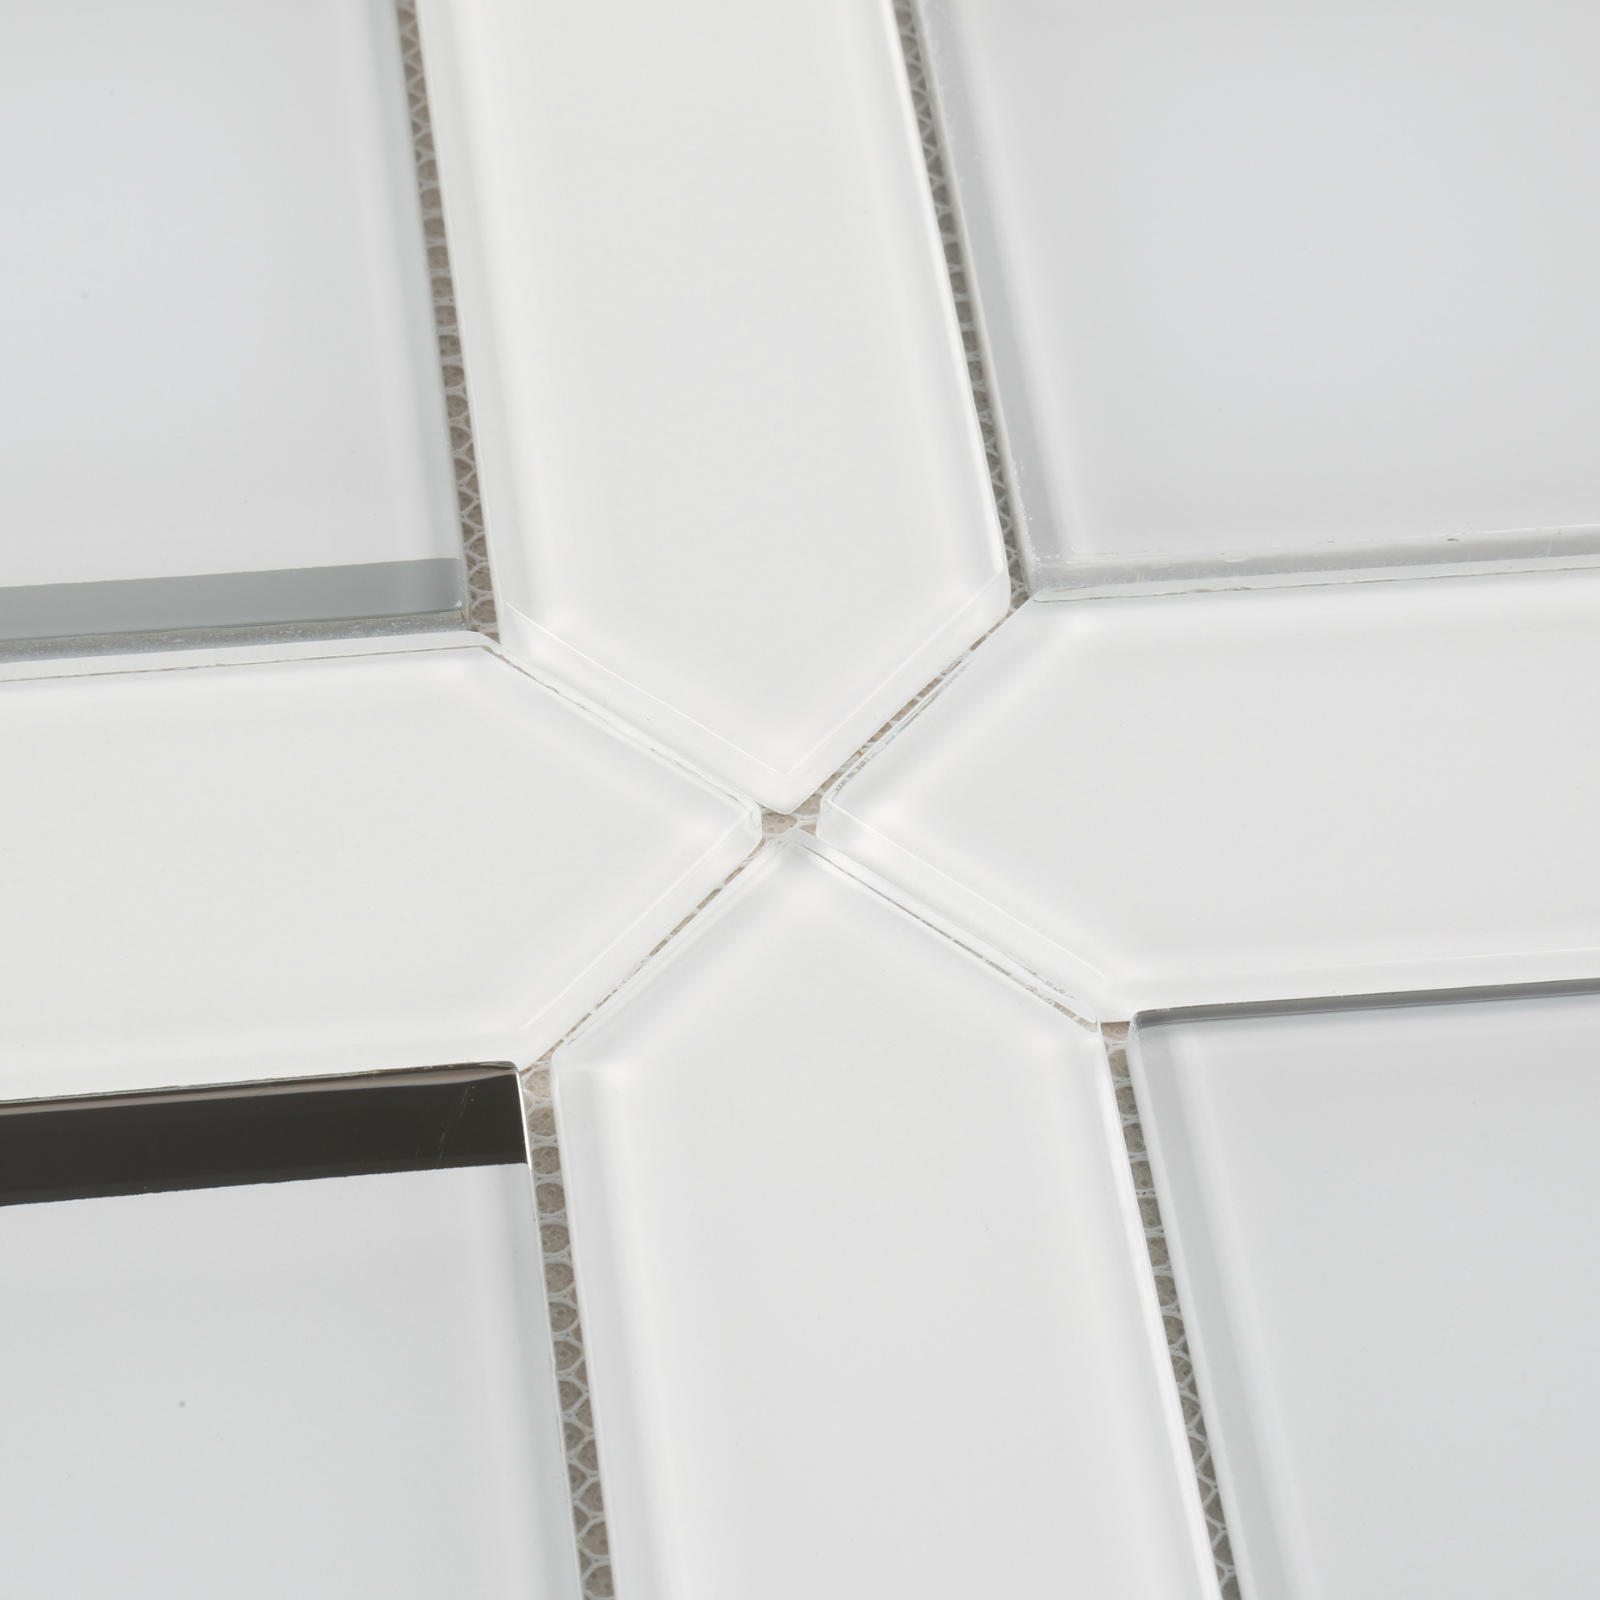 HMB124 Ultra Clear White Bevel Glass Mosaic for Bathroom, living room, wash room